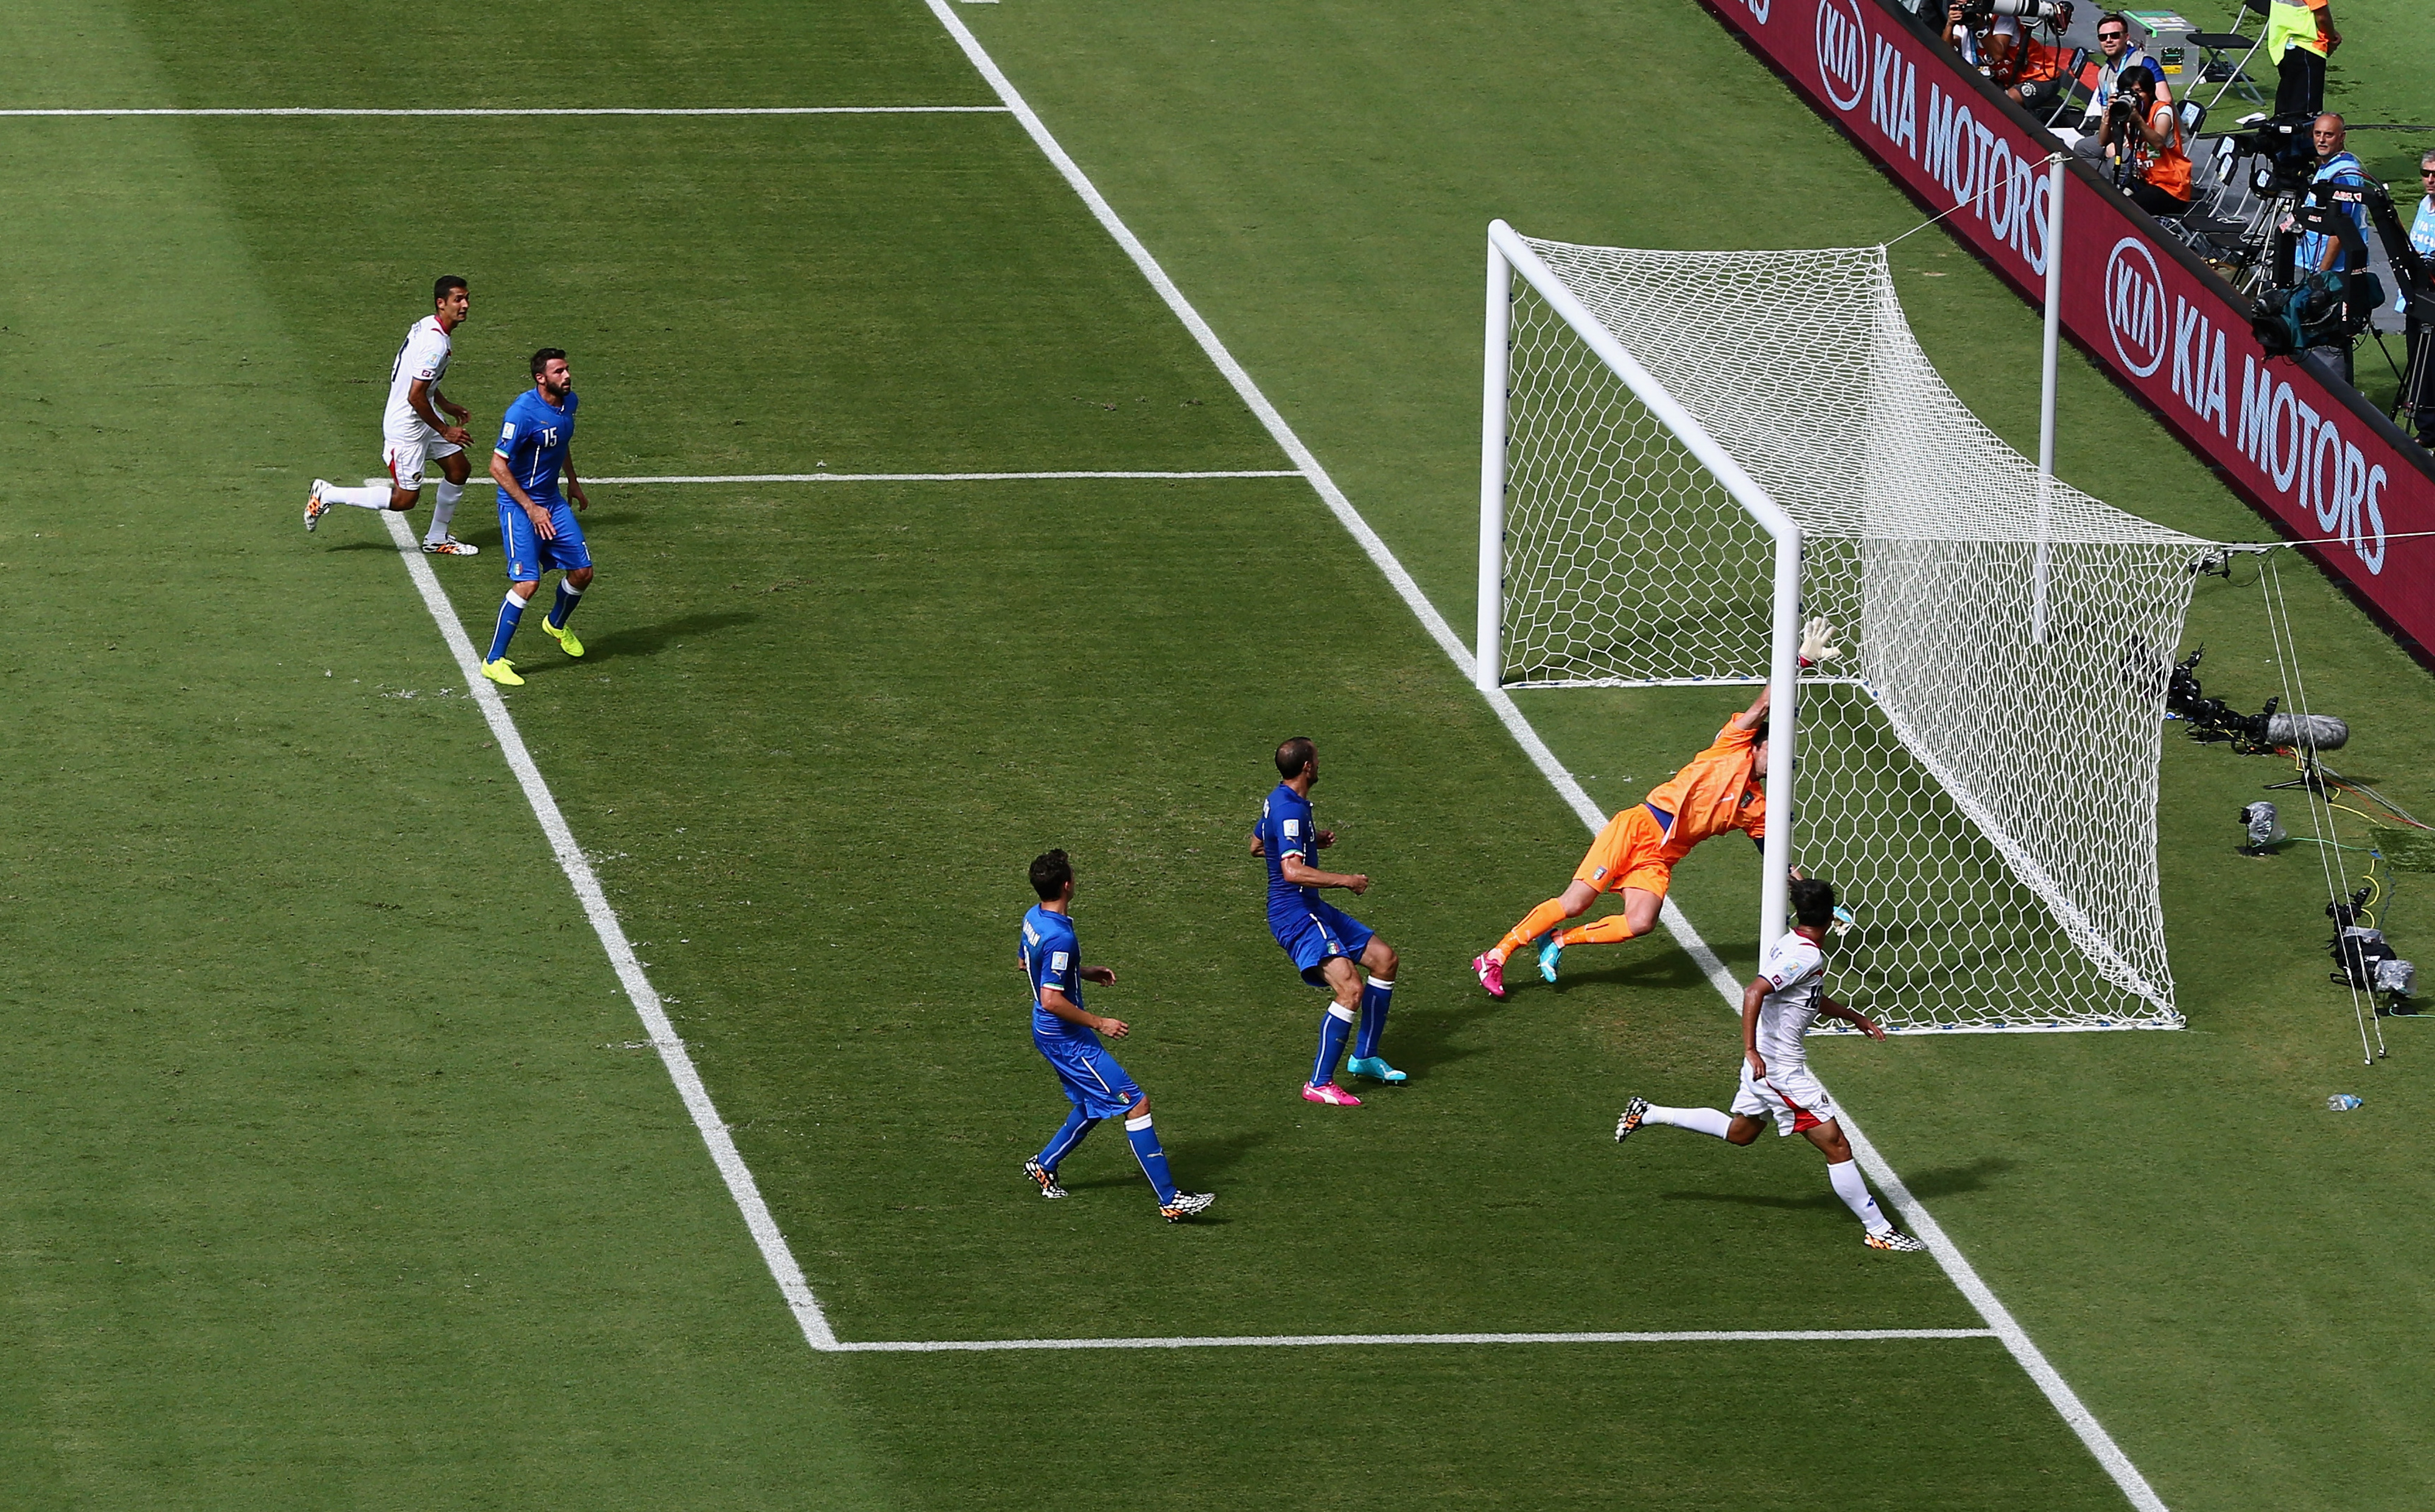 Italy vs. Costa Rica, 2014 World Cup: Ticos produce another upset